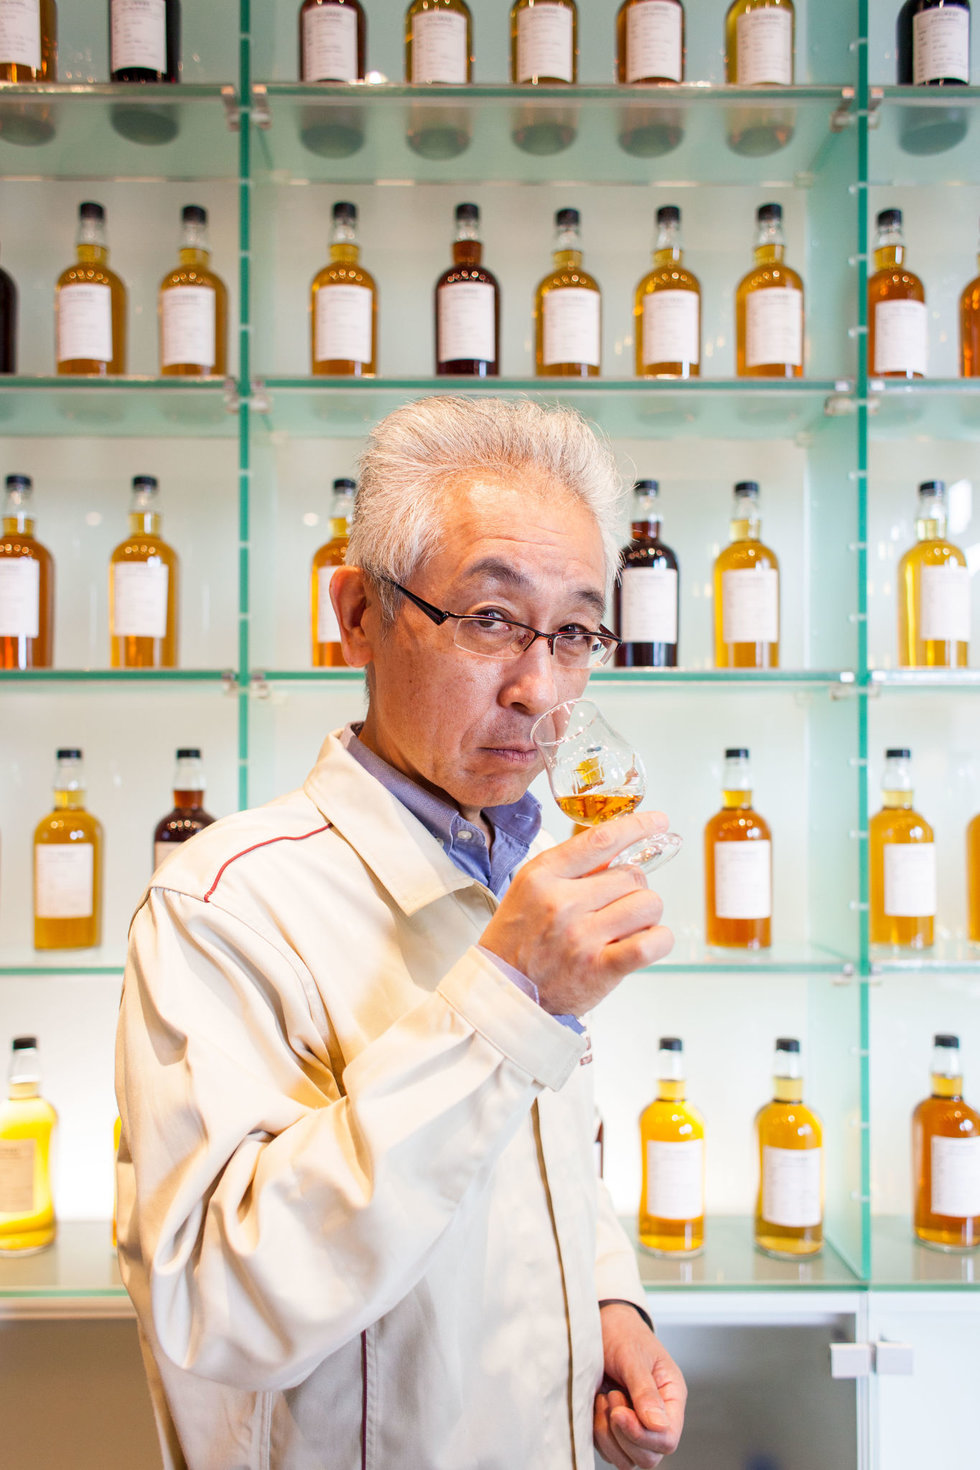 Suntory Chief blender Shinji Fukuyo